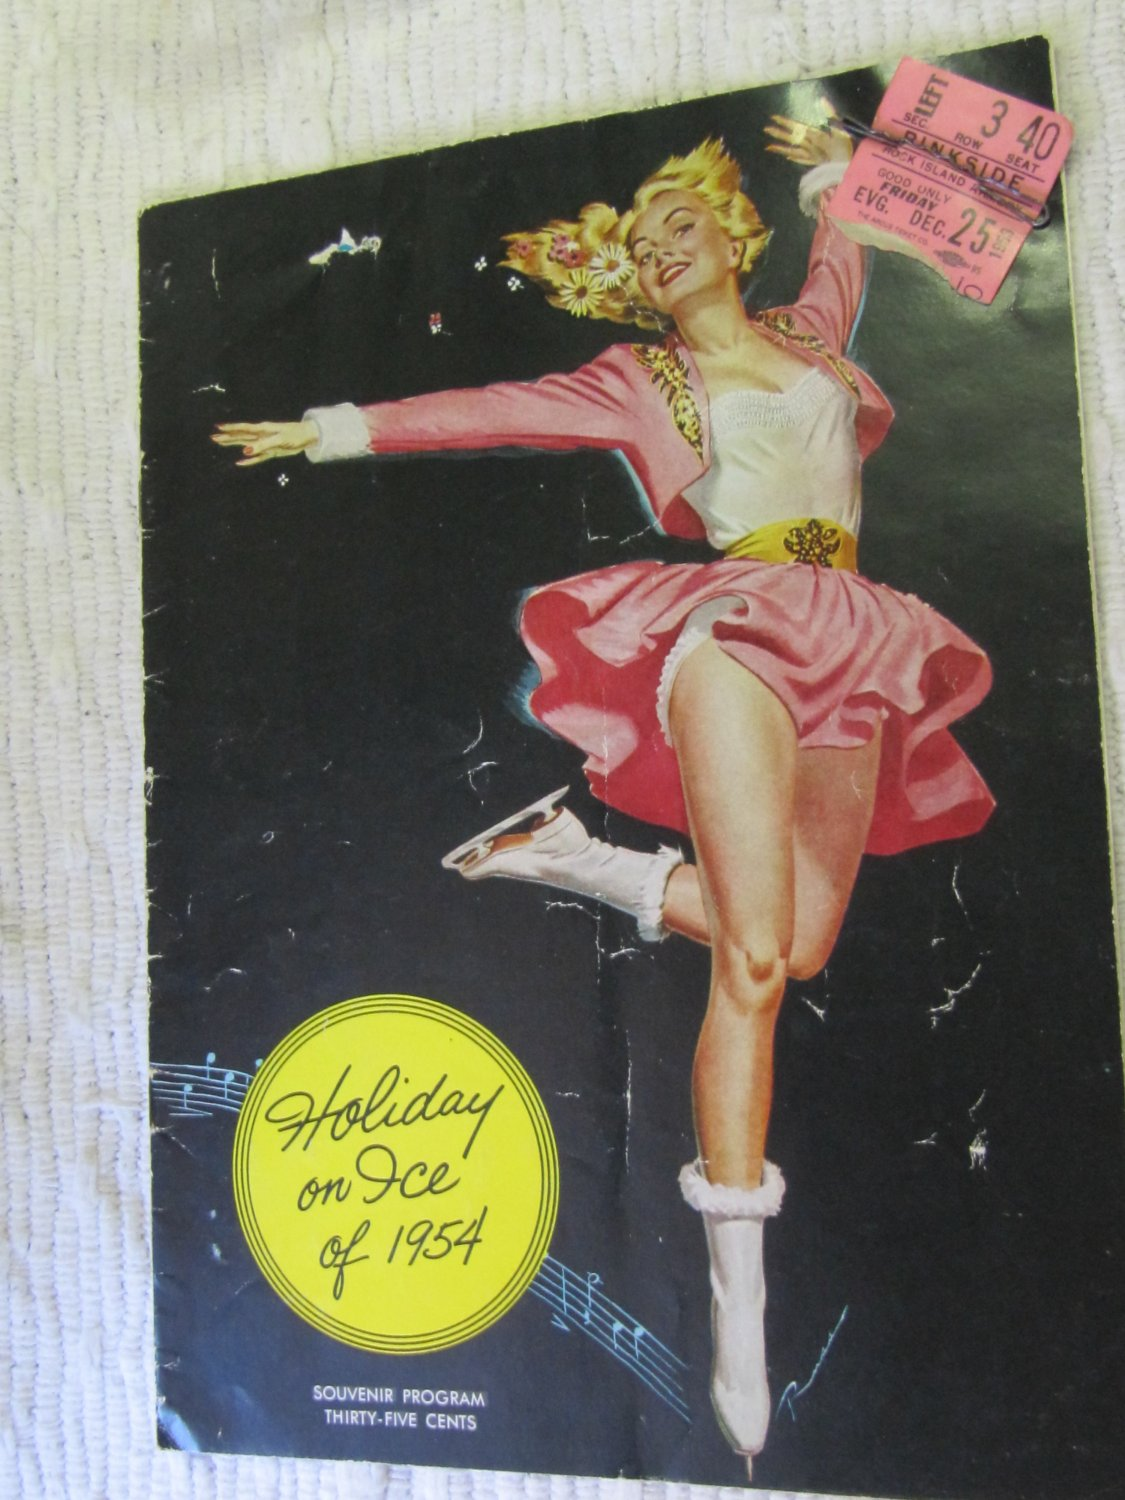 Vintage Holiday on Ice of 1954 Program with Dec 25 1953 Rock Island Armory Ticket Stub